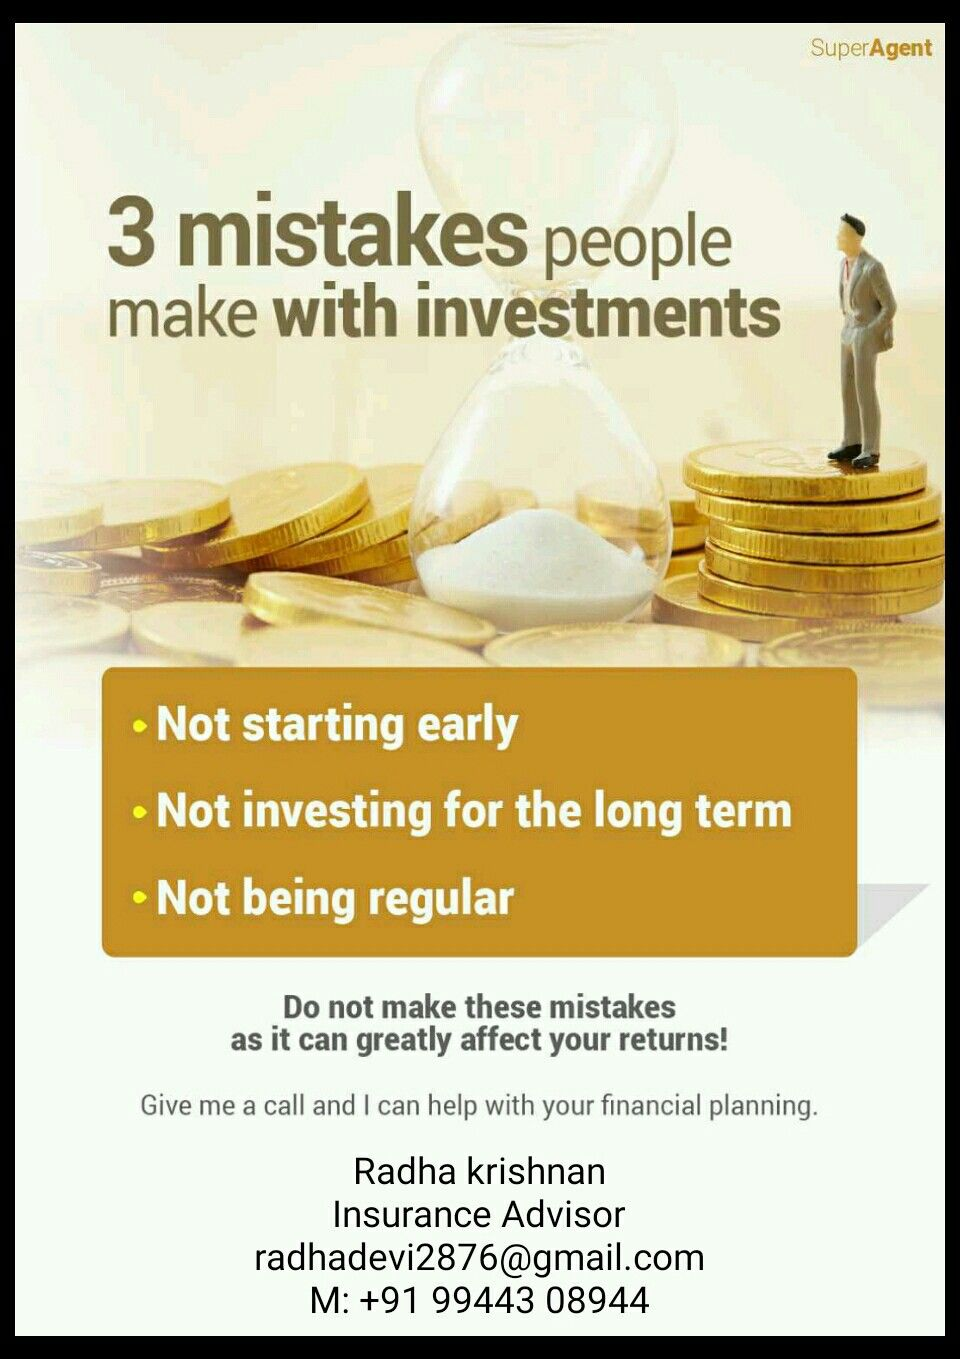 Pin By Ceferina Langley On Life Insurance Advisors Life Insurance Facts Life Insurance Marketing Life Insurance Agent